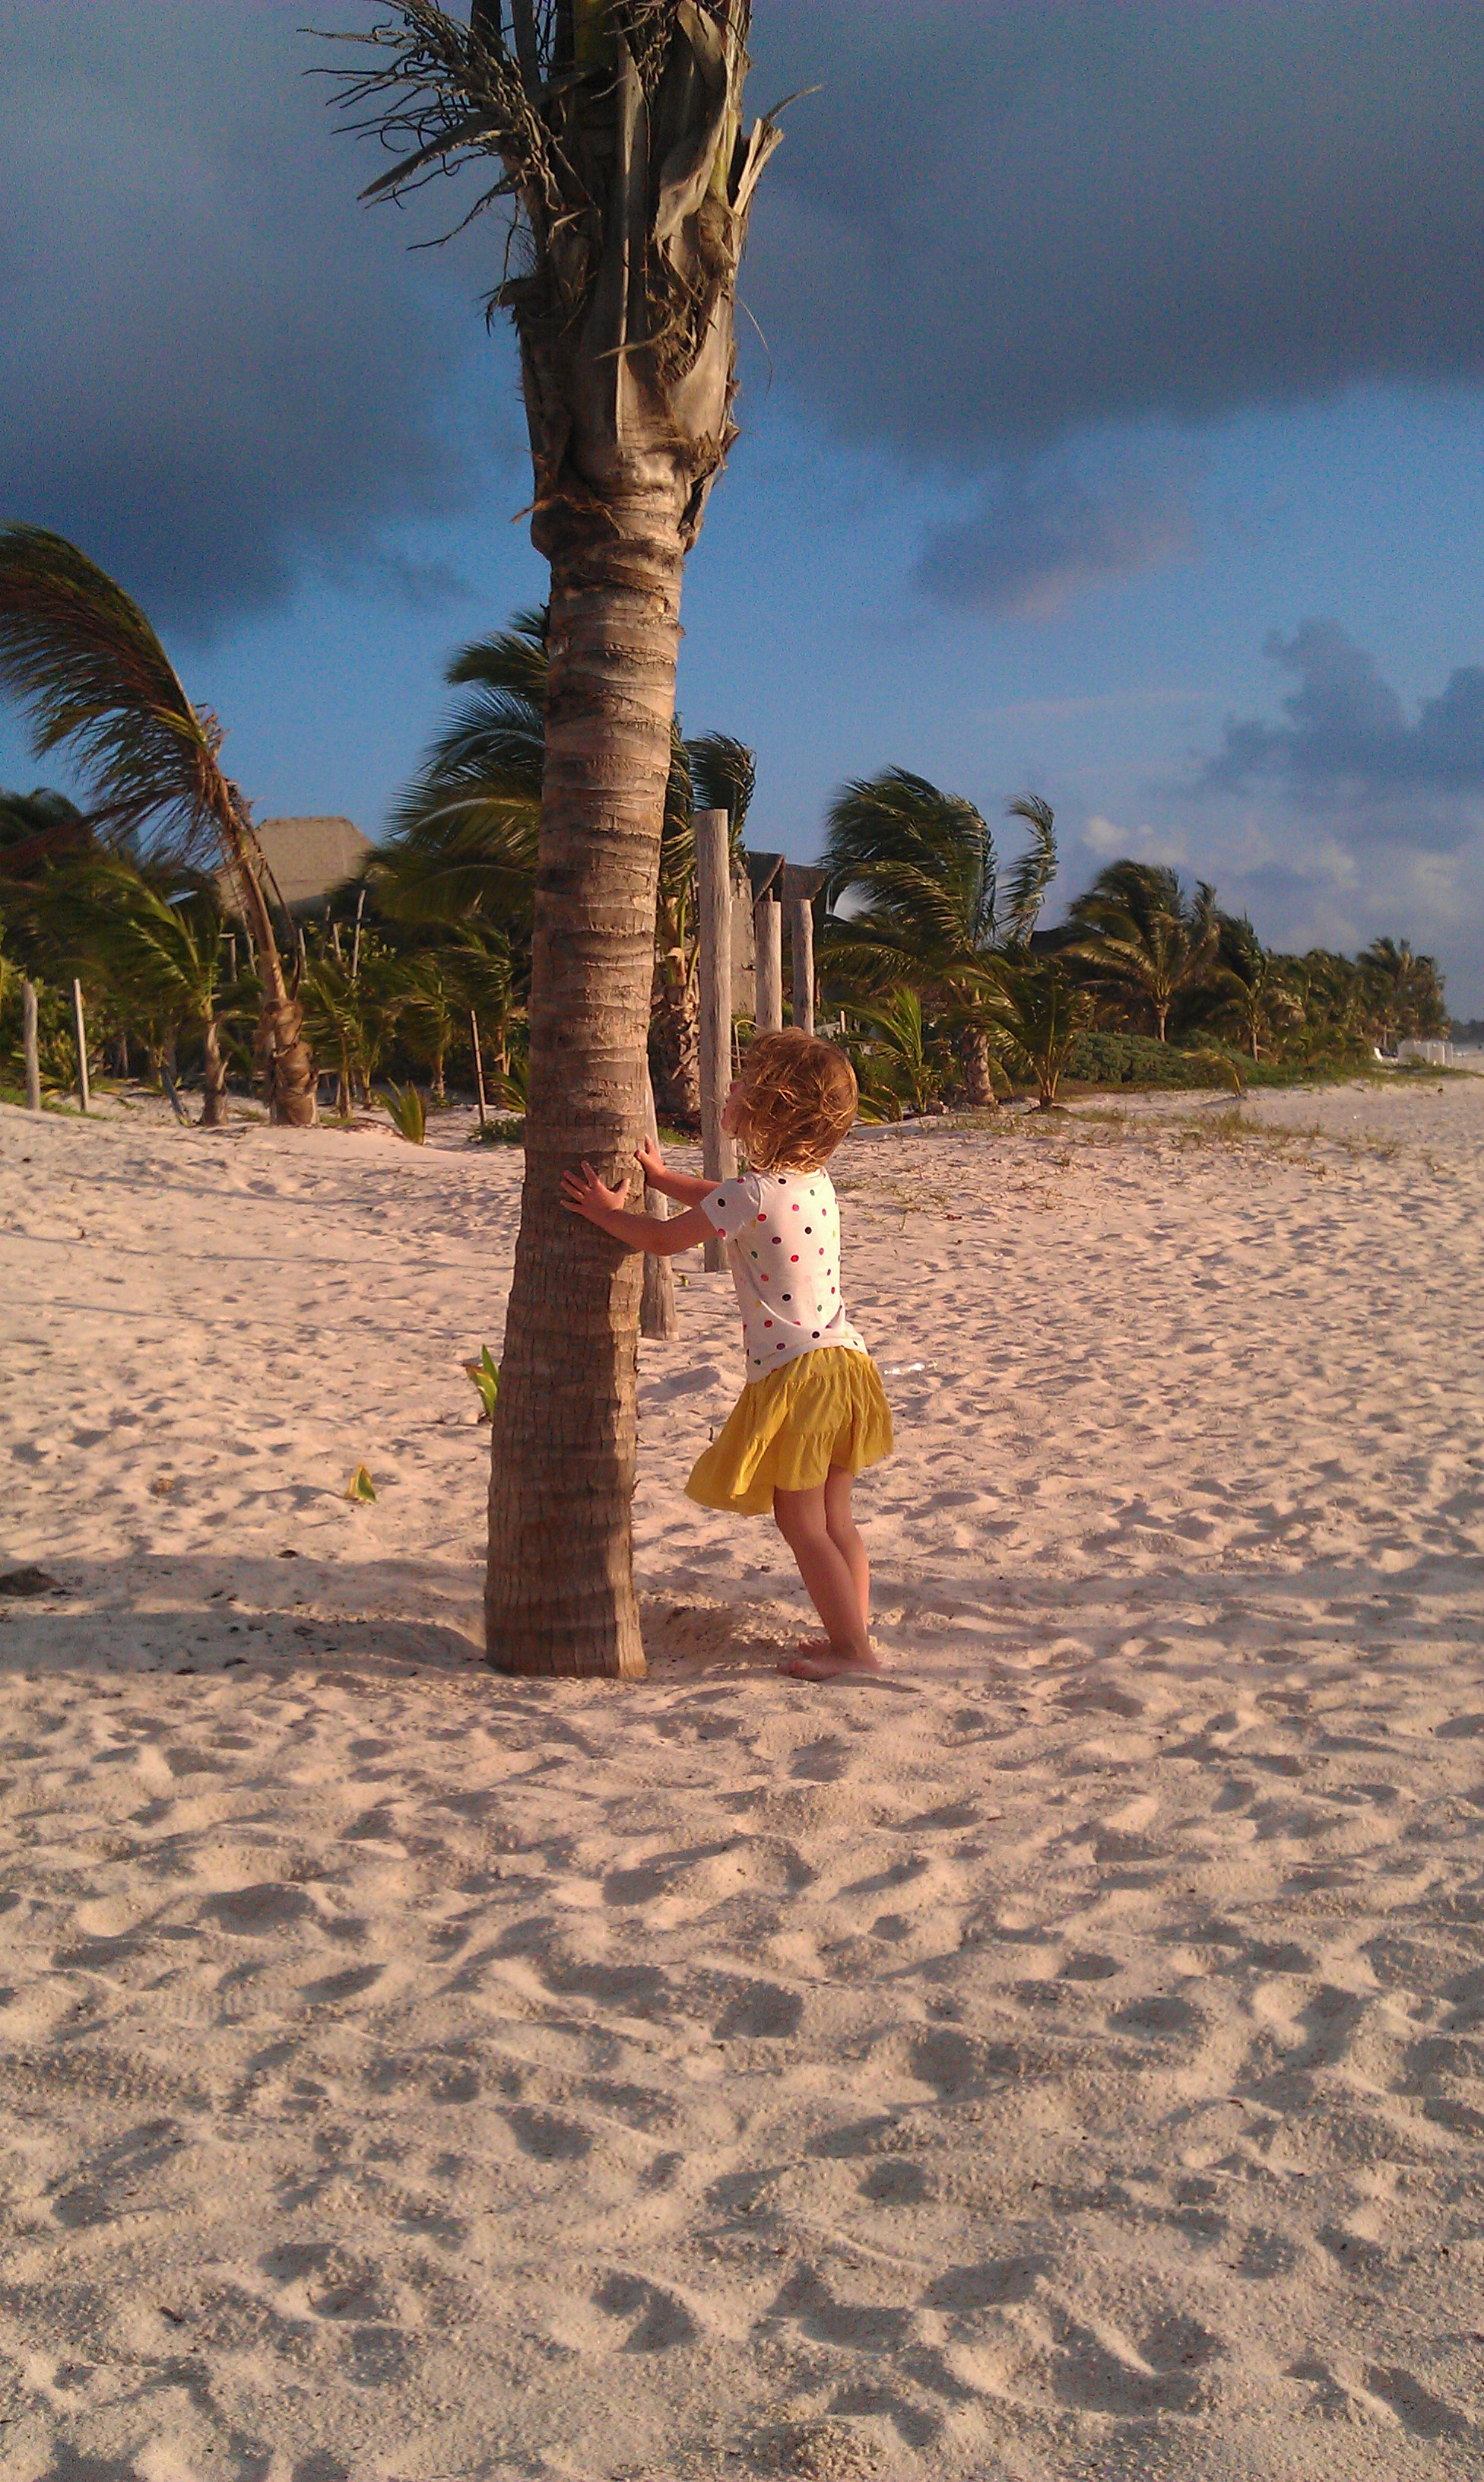 Our favorite activity: Shaking the coconut tree!